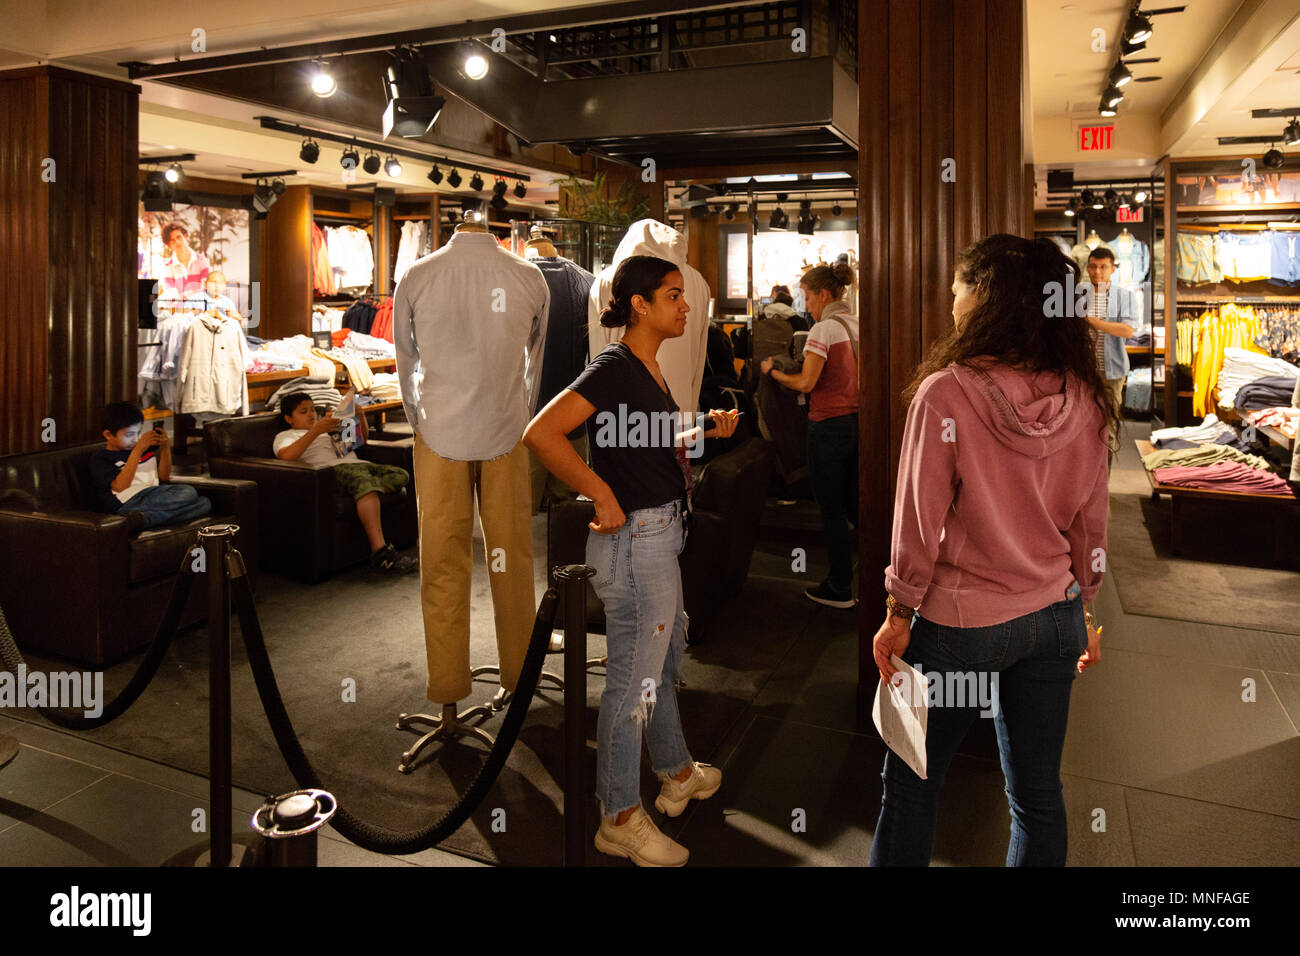 abercrombie fitch clothing people shopping in the abercrombie